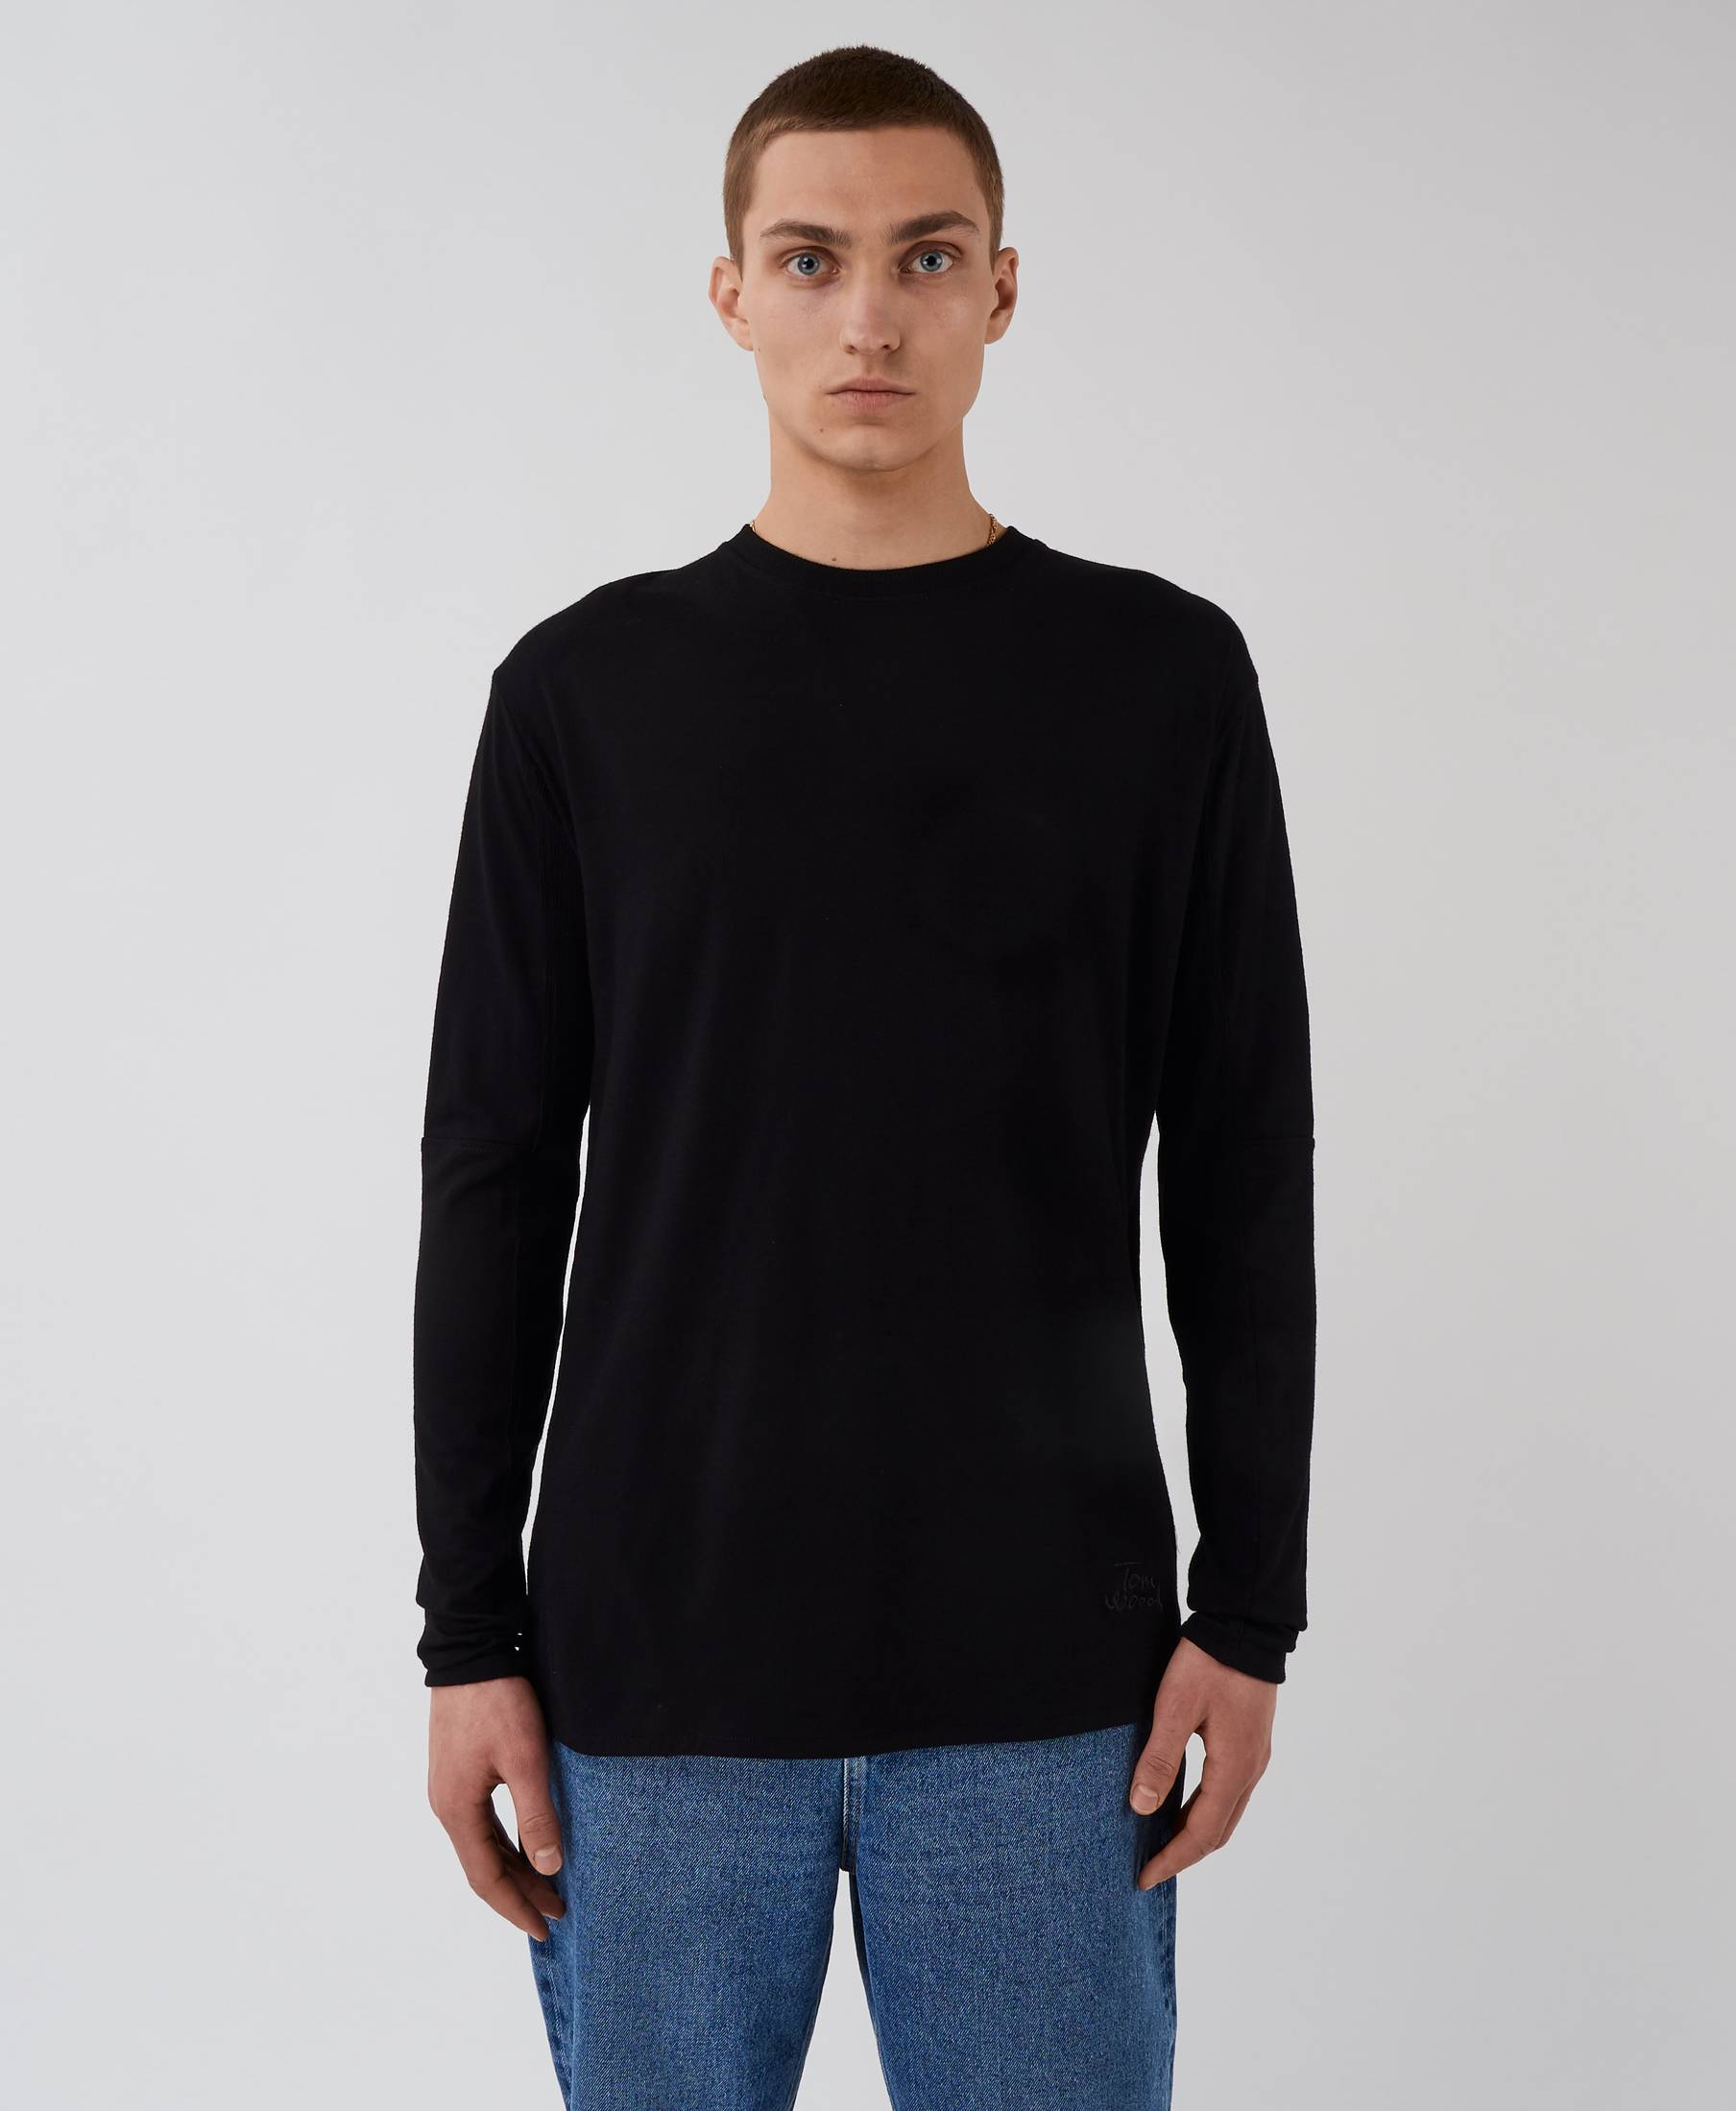 Timeless Long Sleeve Pistol Black